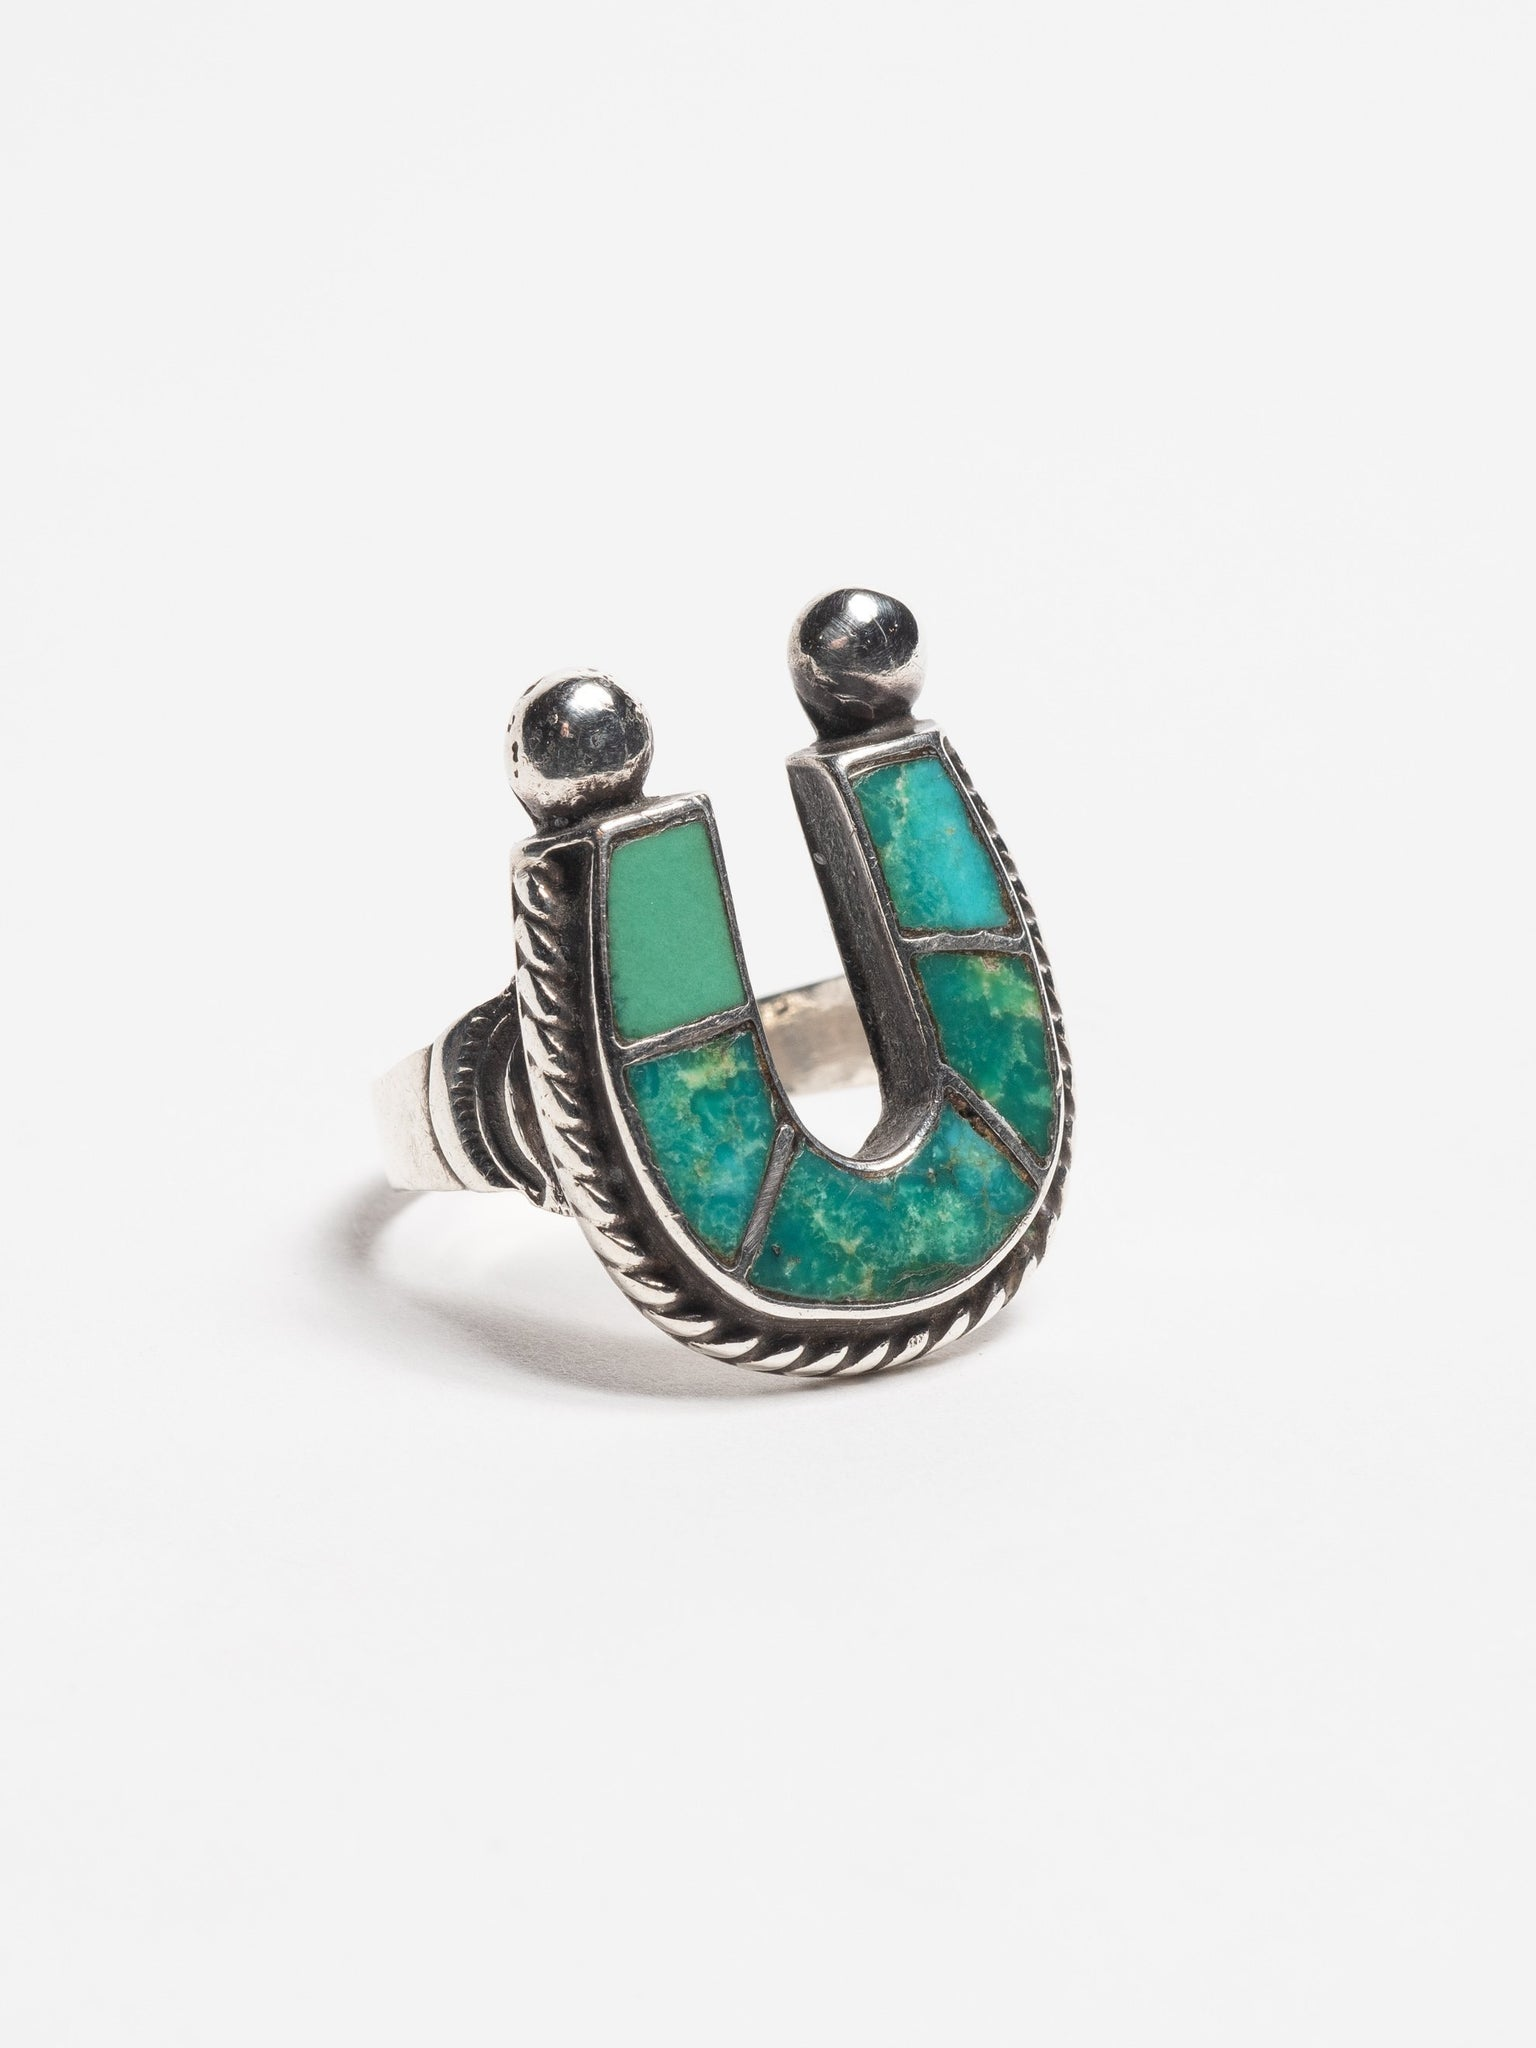 vintage-1950-s-navajo-sterling-silver-turquoise-lucky-horse-shoe-ring